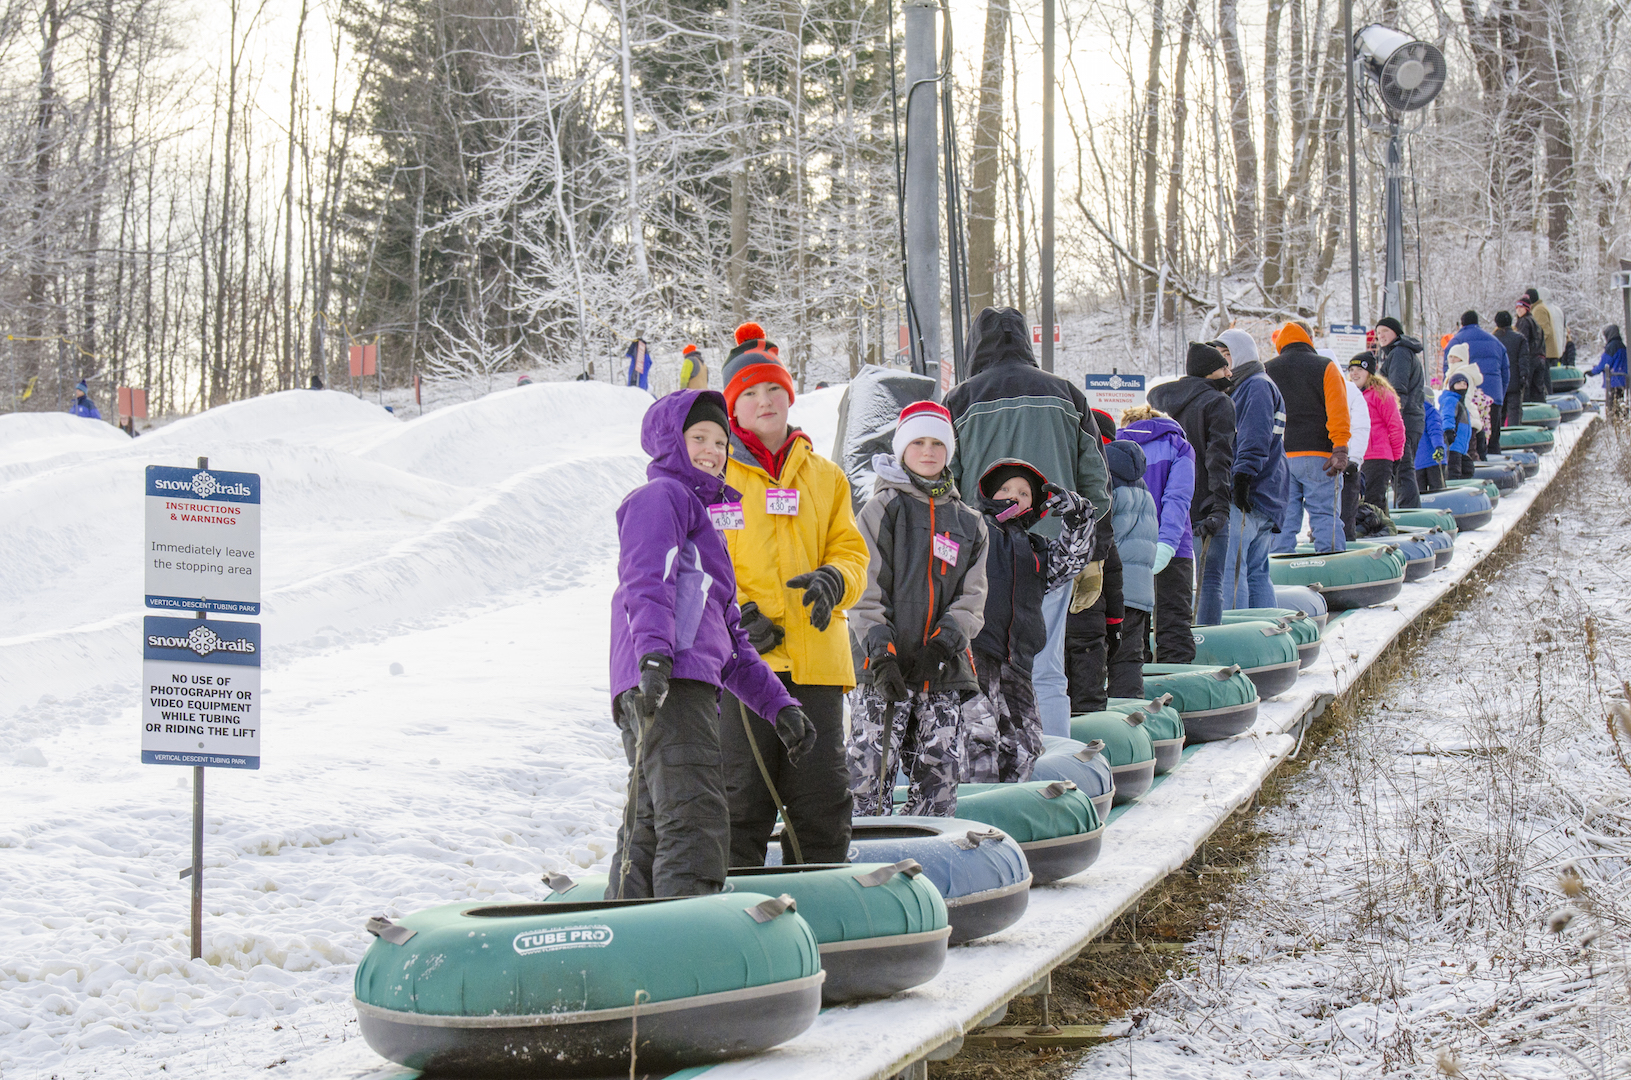 Need Some Outdoor Winter Fun in Your Life This Holiday Weekend?